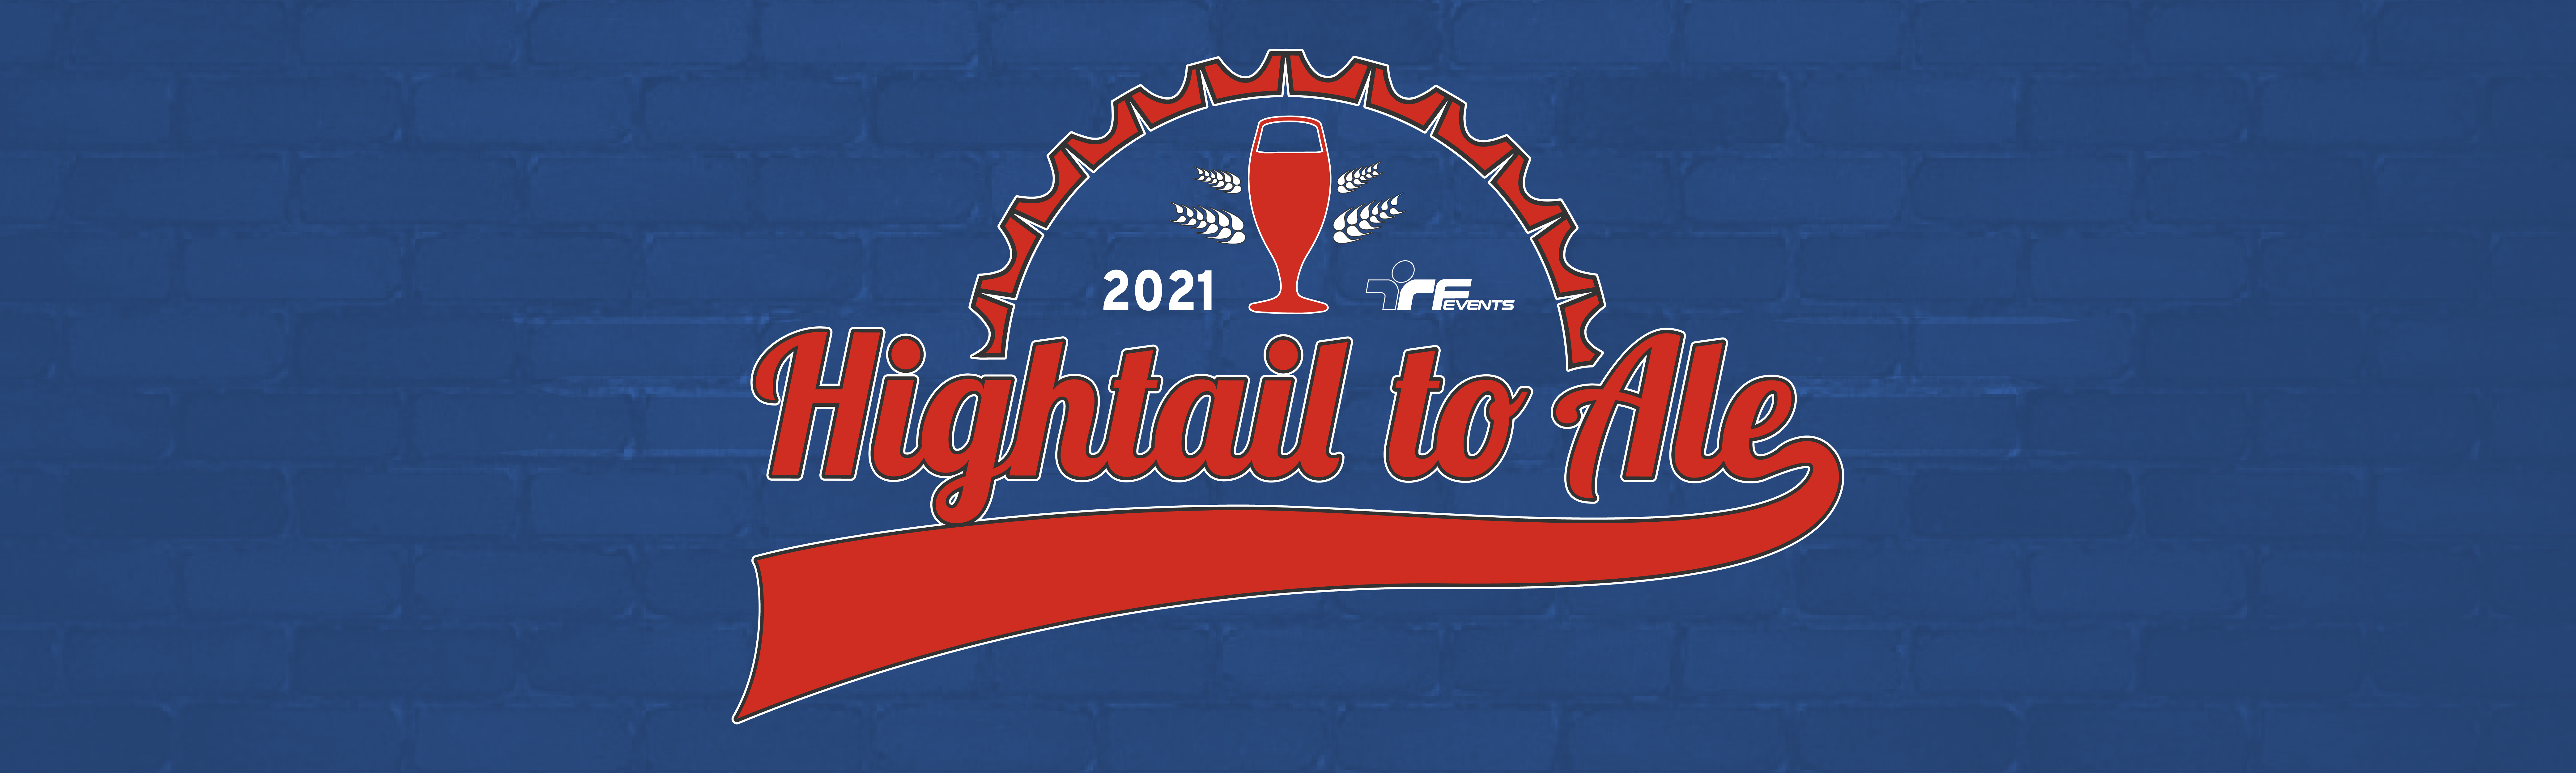 Hightail 2021 Banner